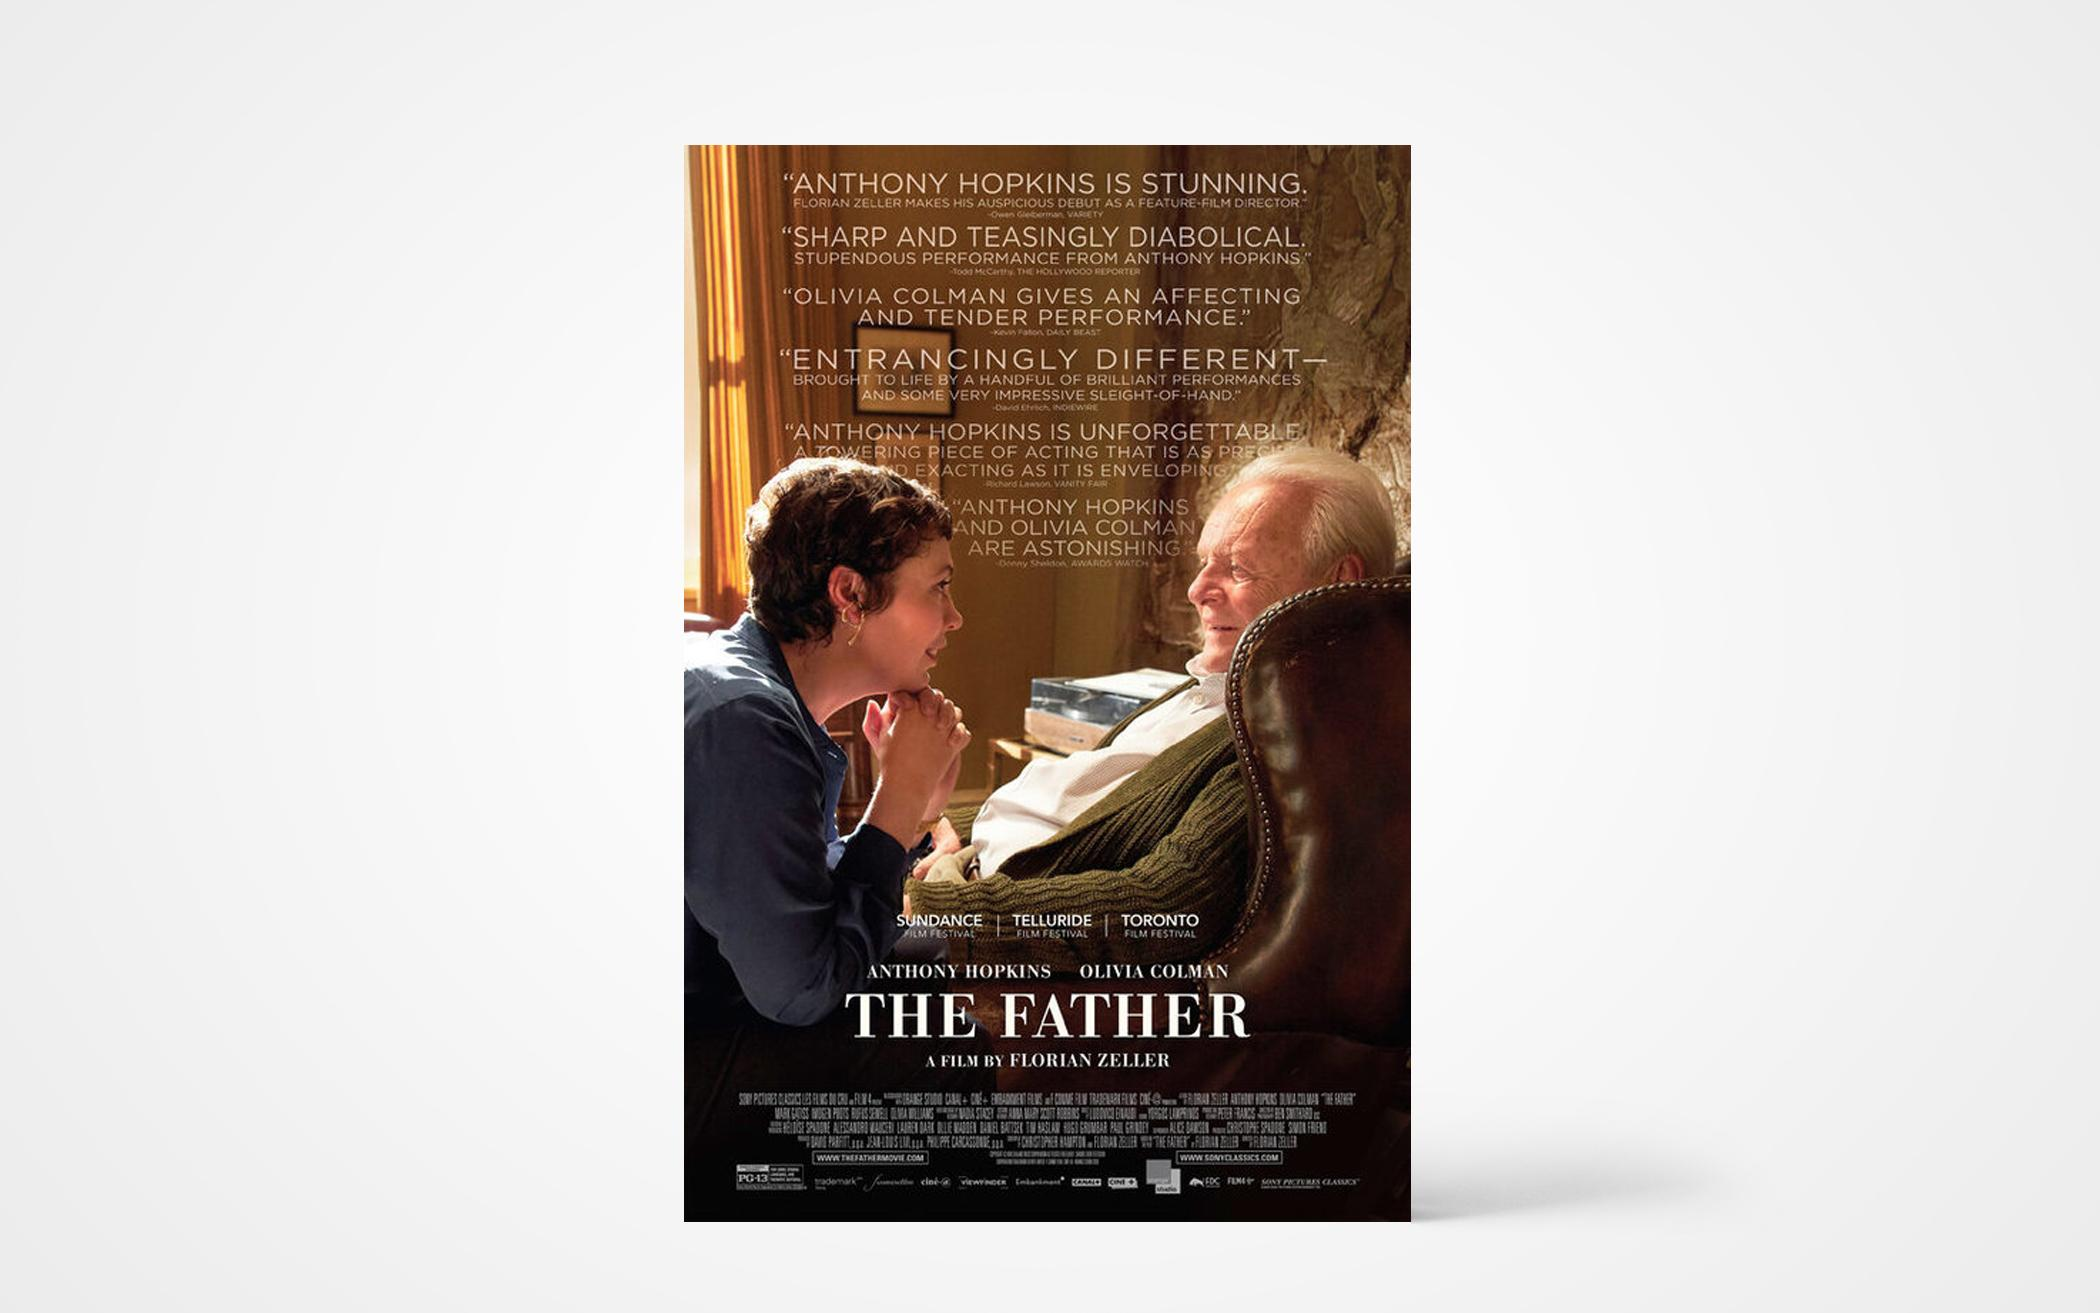 The Father